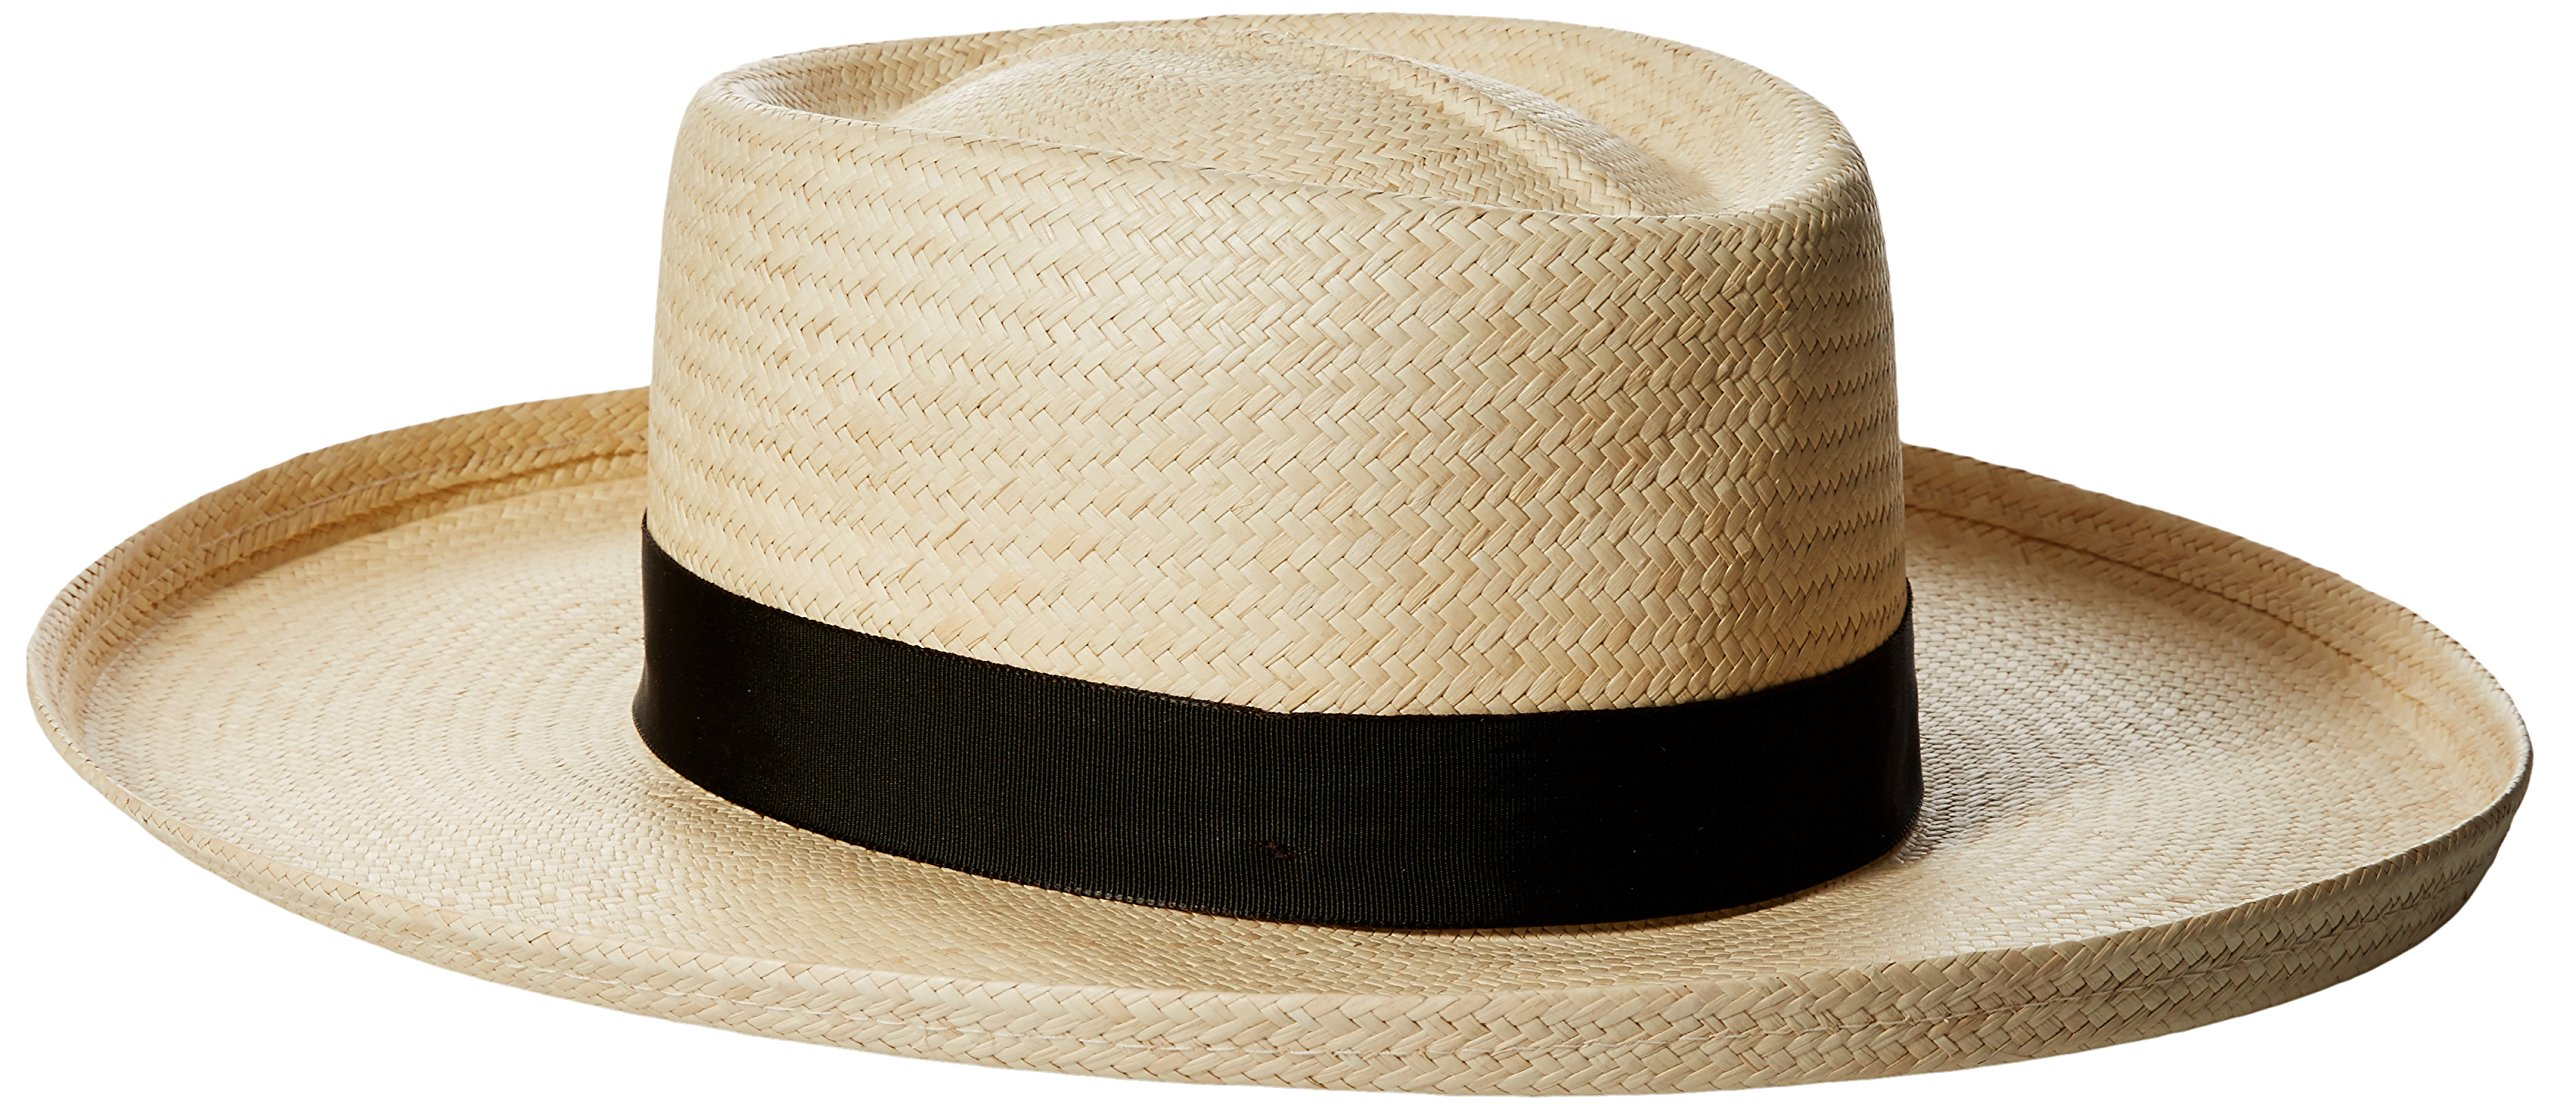 Scala Men's Grade 3 Big Brim Panama, Natural, Medium by Scala